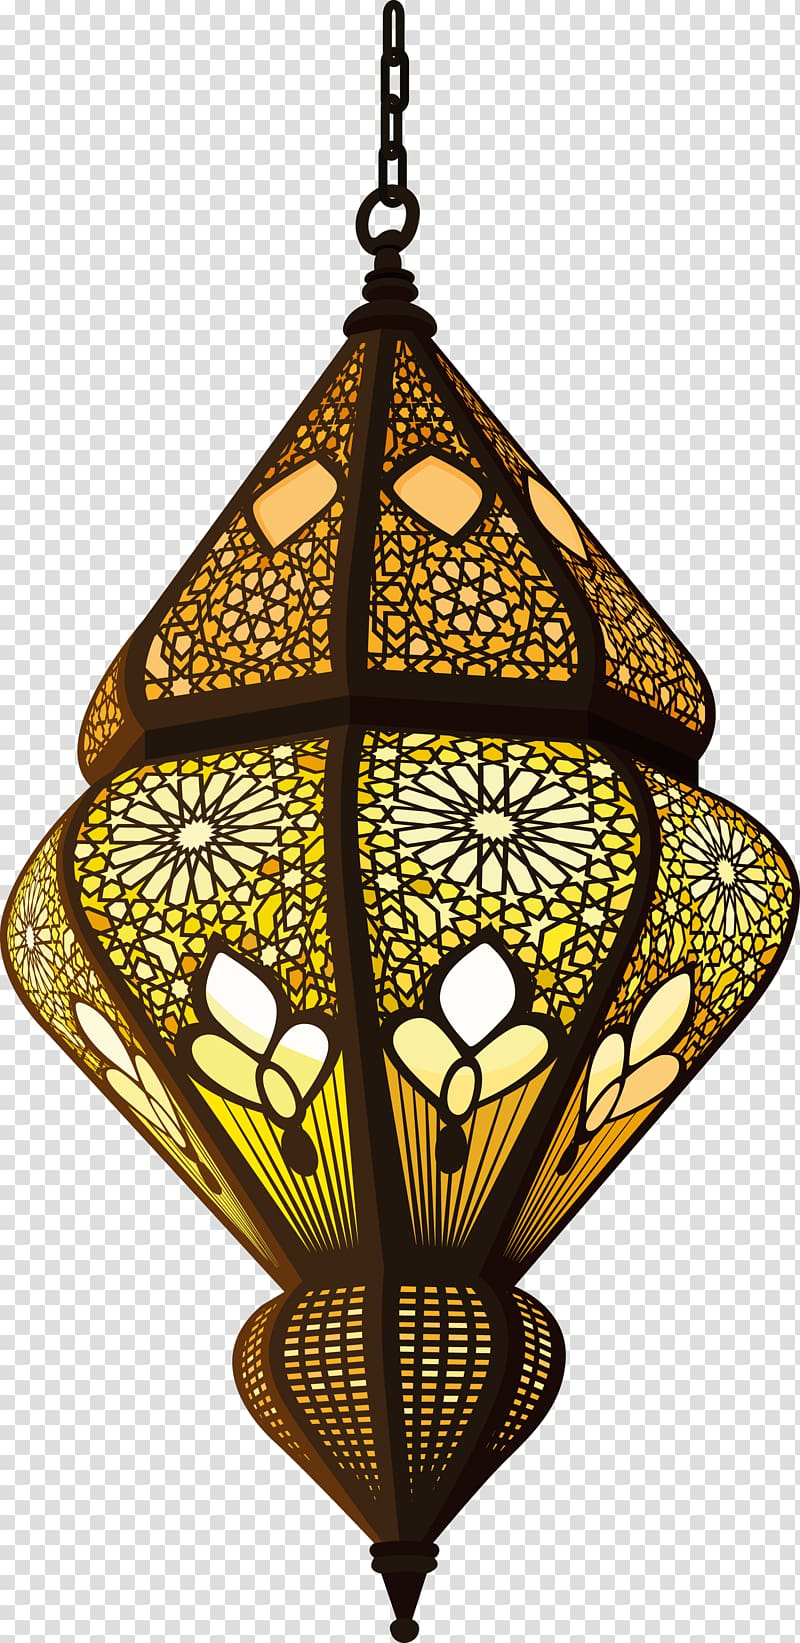 Islamicdecorations clipart svg free library Quran Islam Allah Sufism Muslim, Islam decorative lamp, yellow and ... svg free library